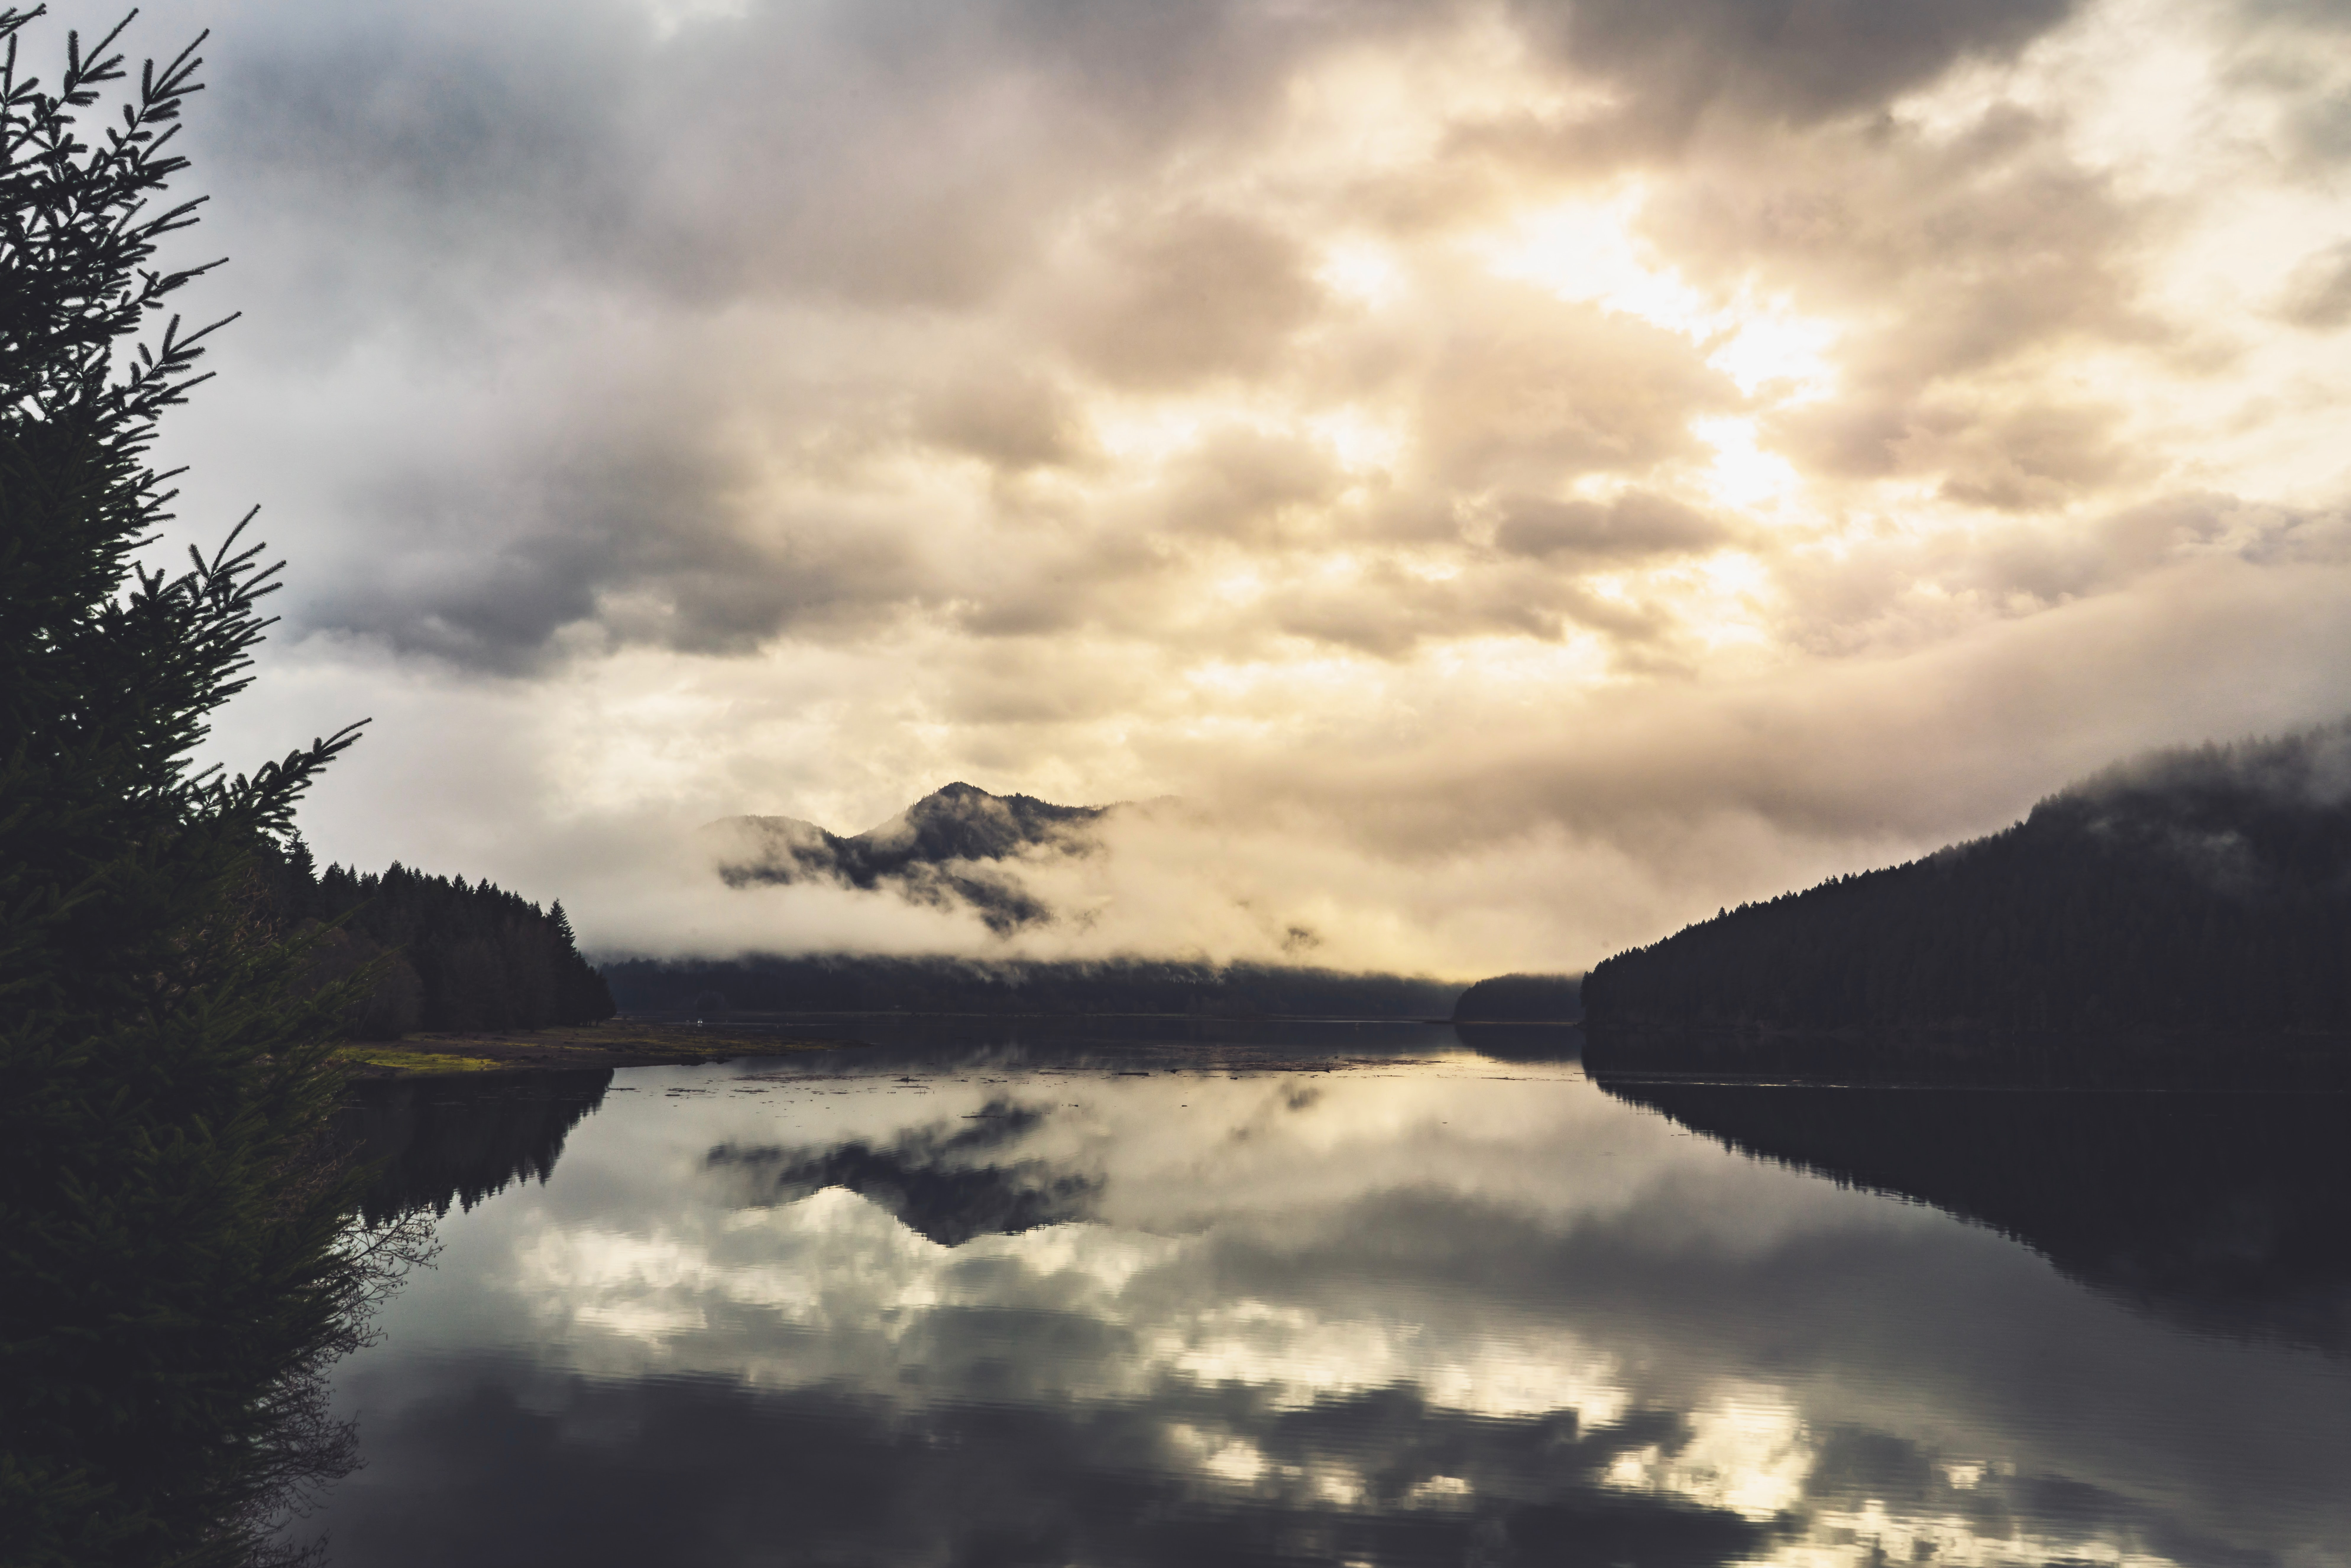 landscape photography of body of water between forest